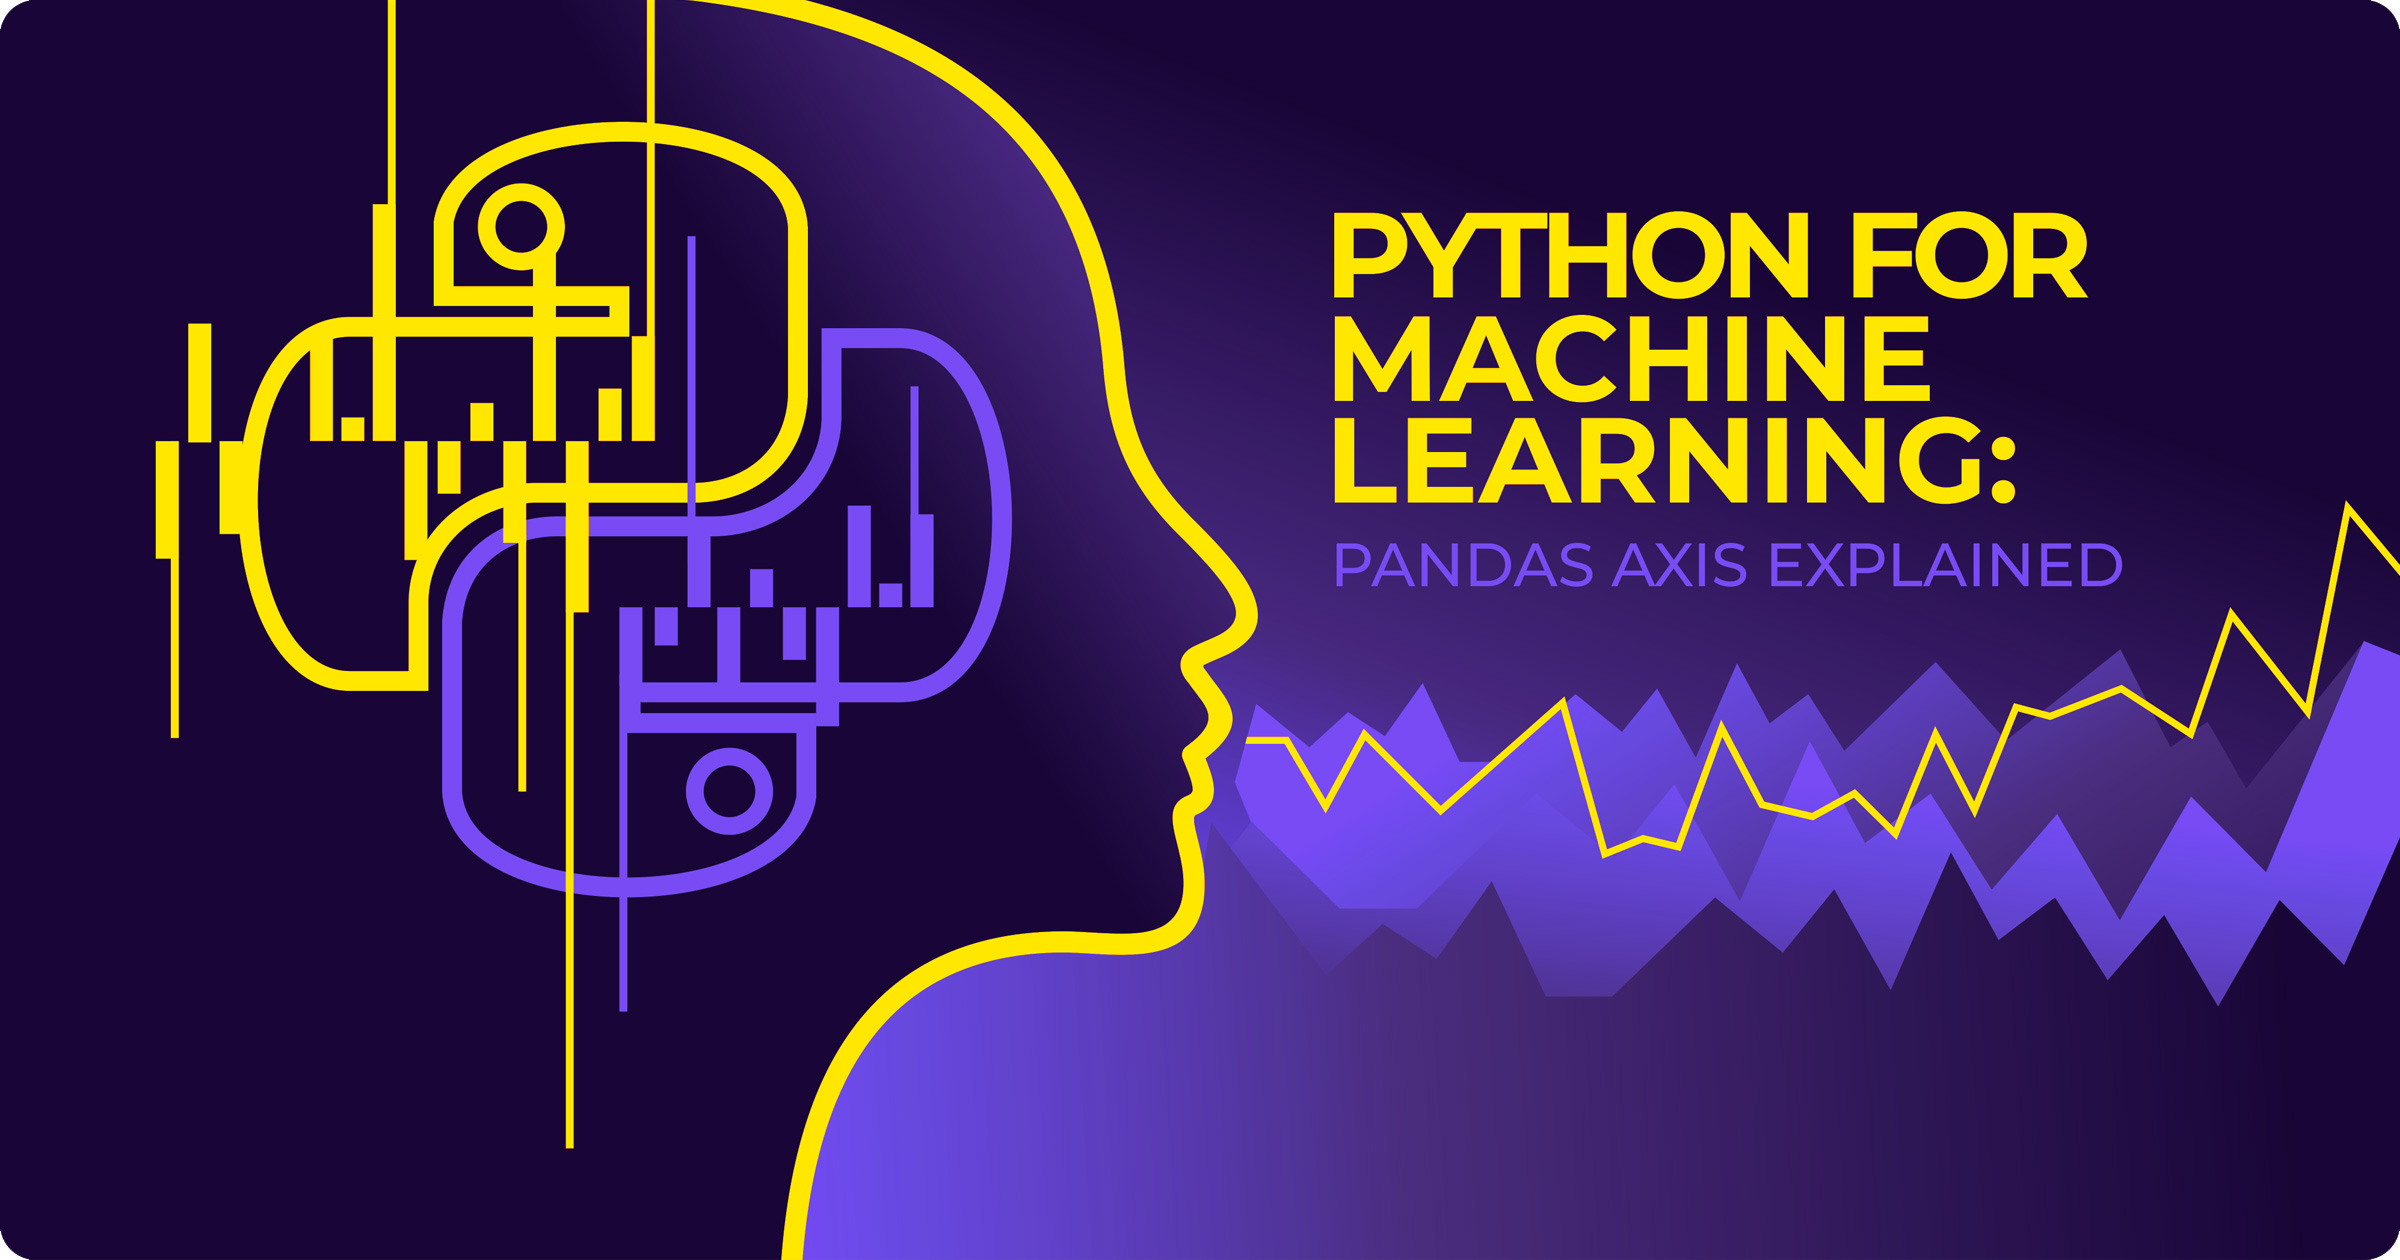 Pandas Axis Usage in Machine Learning